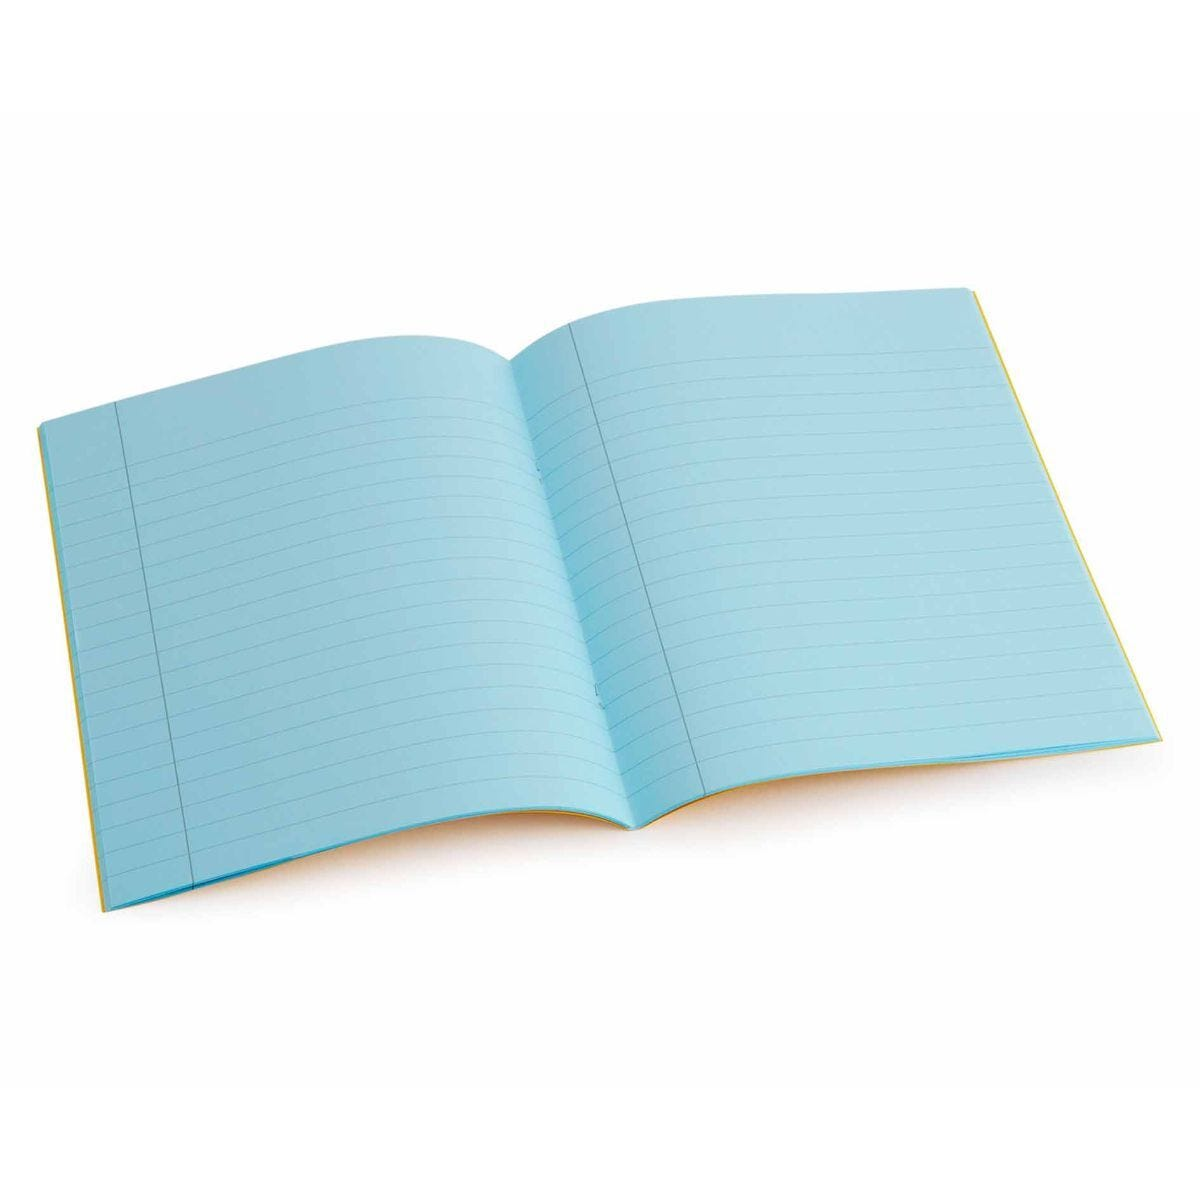 Tinted Exercise Book Standard 7x9 Lined 10mm Aqua